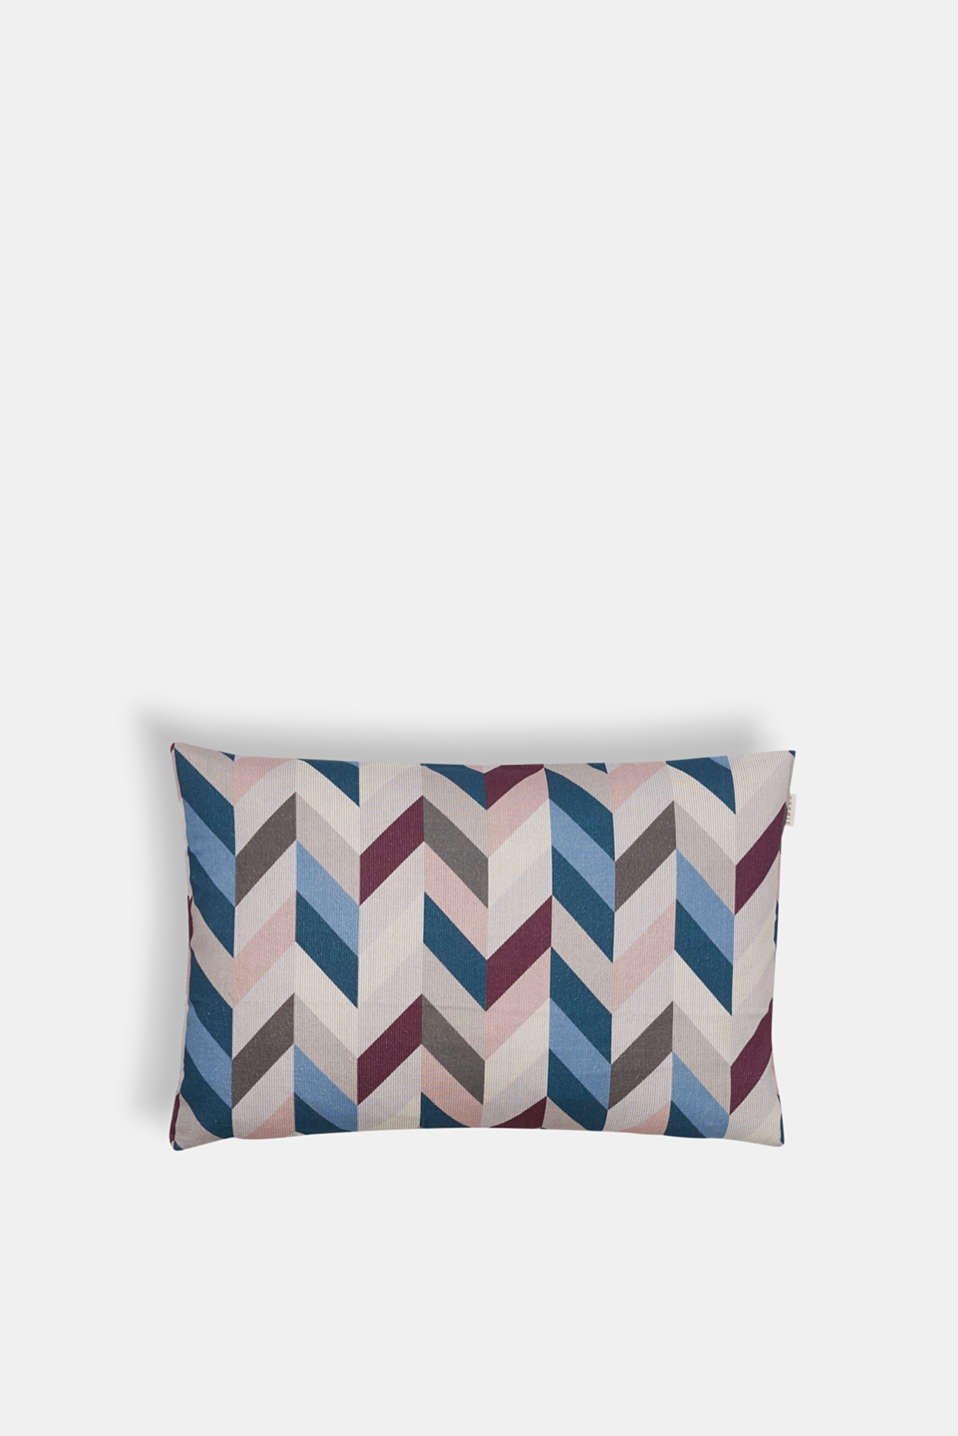 Esprit - Cushion cover made of 100% cotton